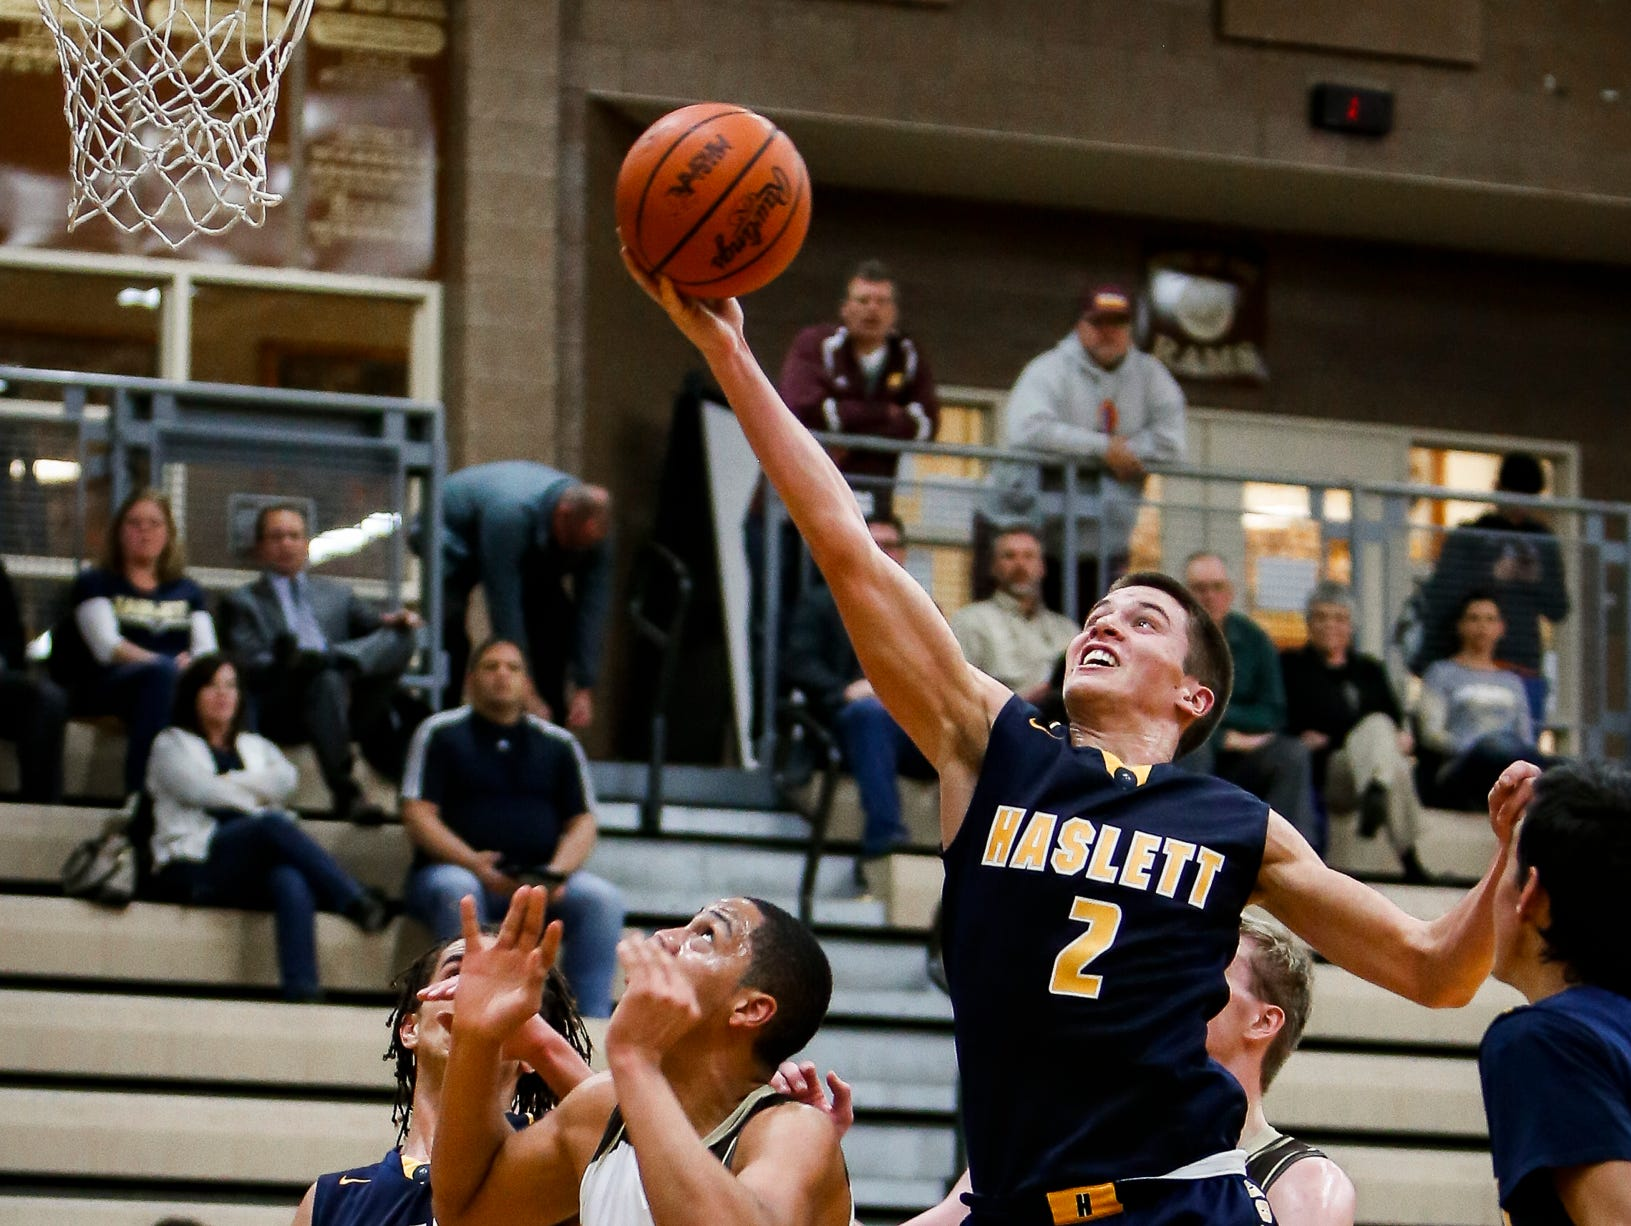 Haslett senior Evan Block drops in two from the paint against Holt Tuesday, Jan. 24, 2017, at Holt. Holt won 62-44.